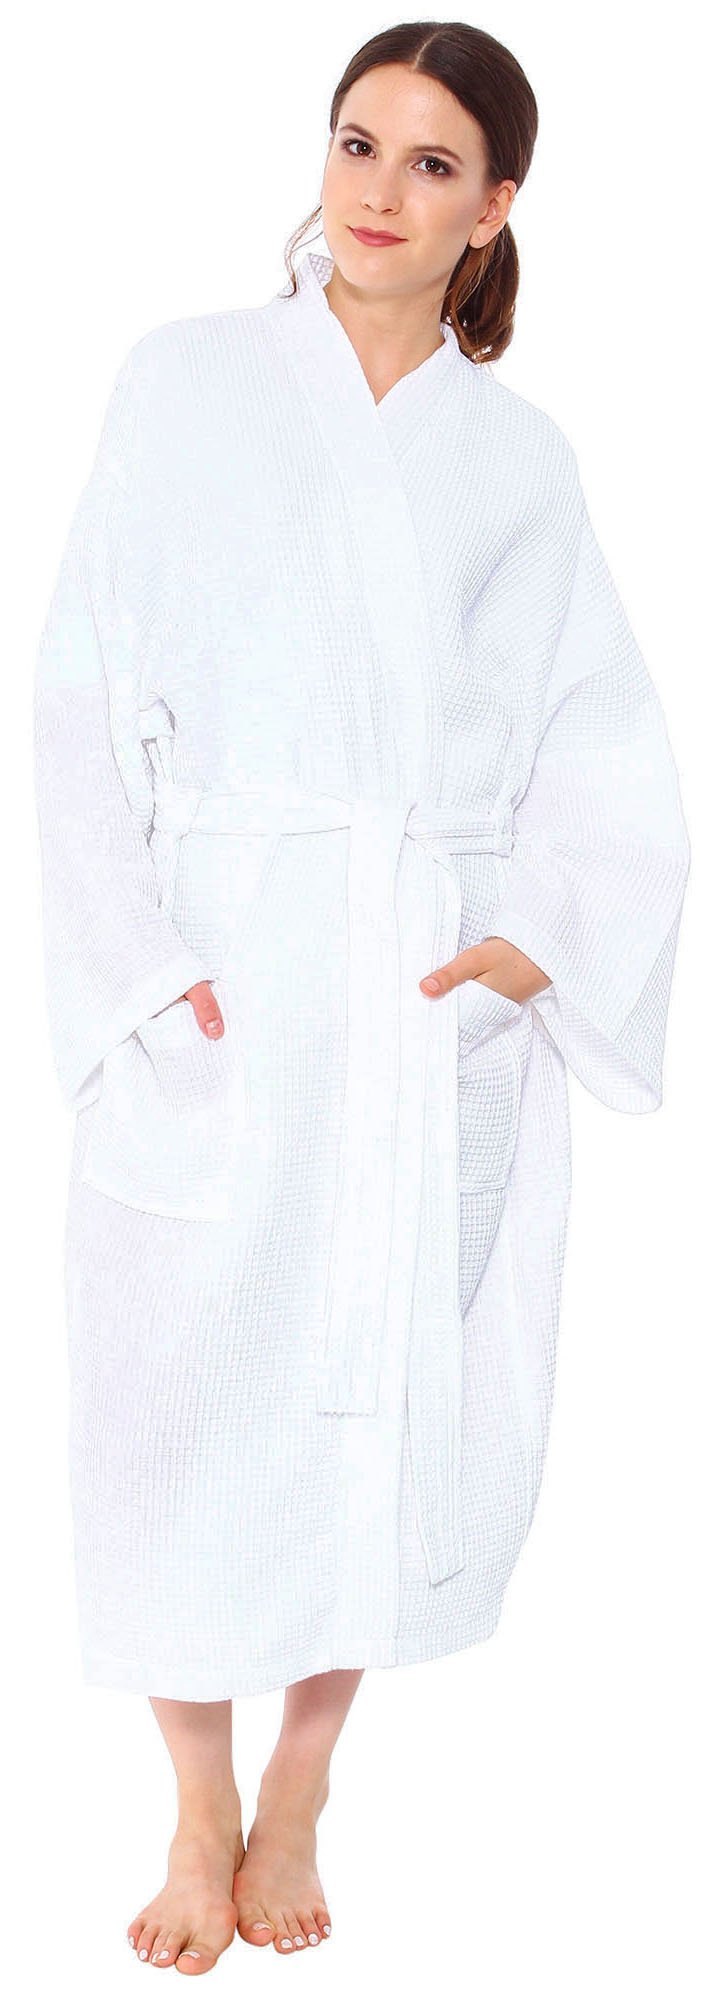 12 Bulk Lot Wholesale-cozy Cotton Style Waffle Pattern Spa & Bath Robe-sleepwear